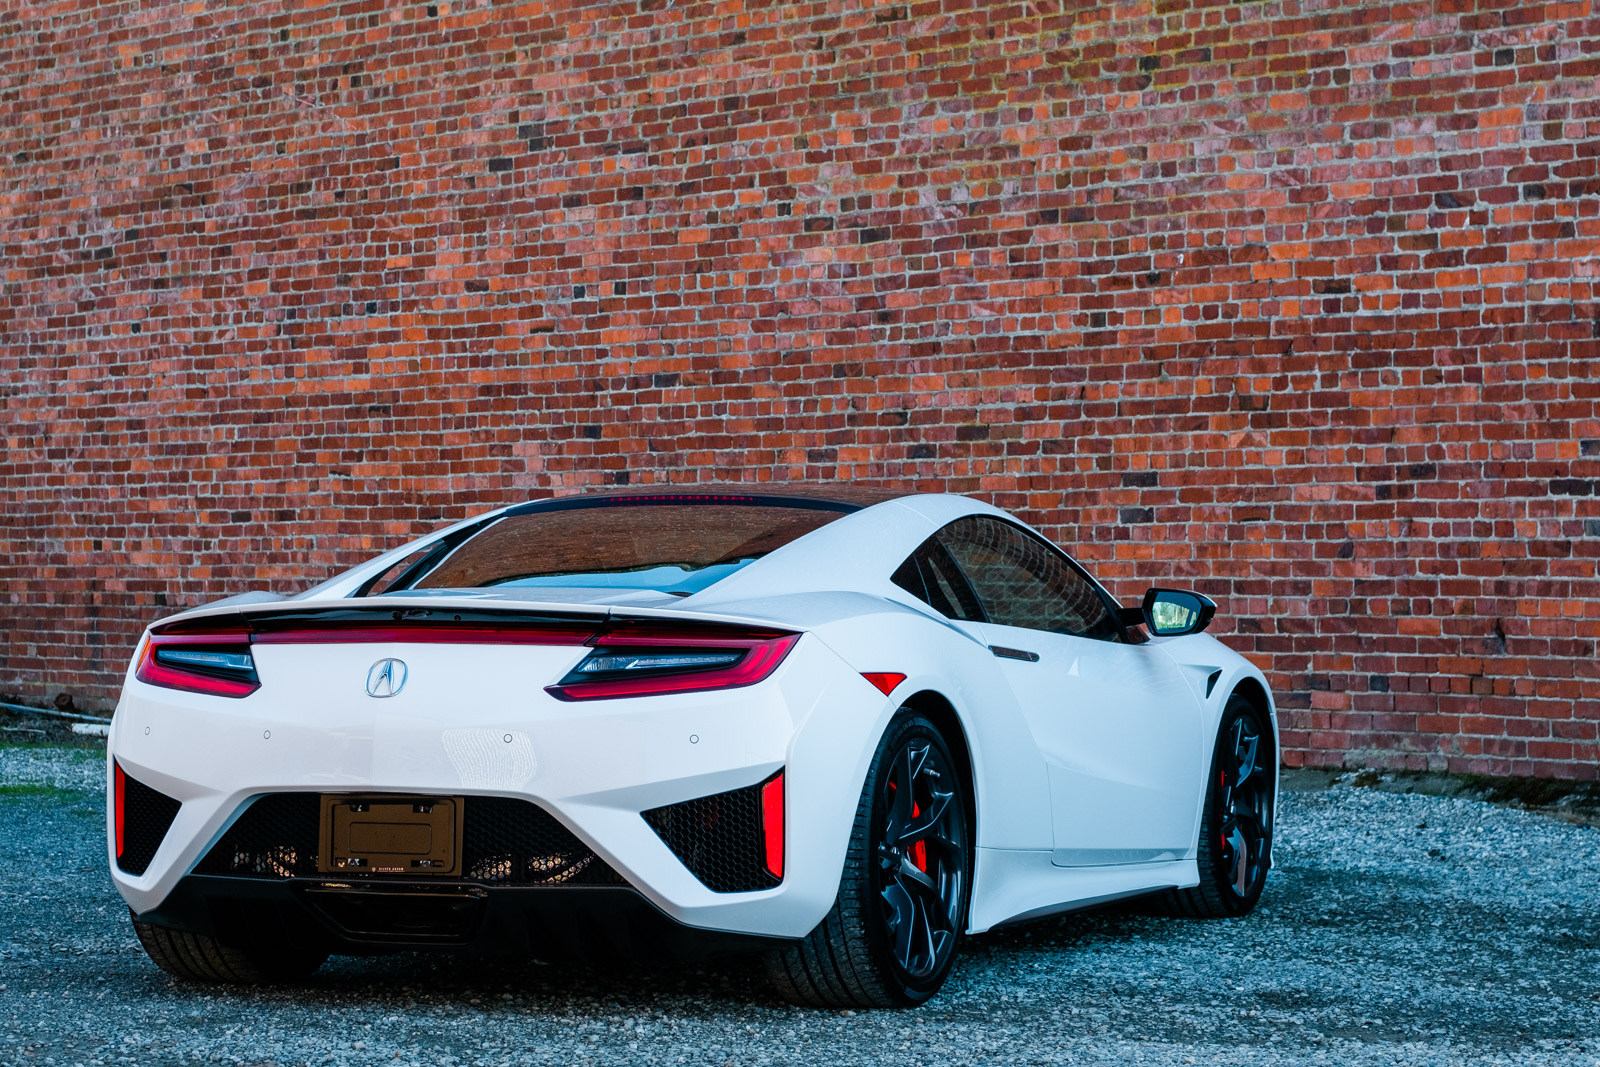 2017 Acura Nsx In Victoria Bc Silver Arrow Cars Ltd